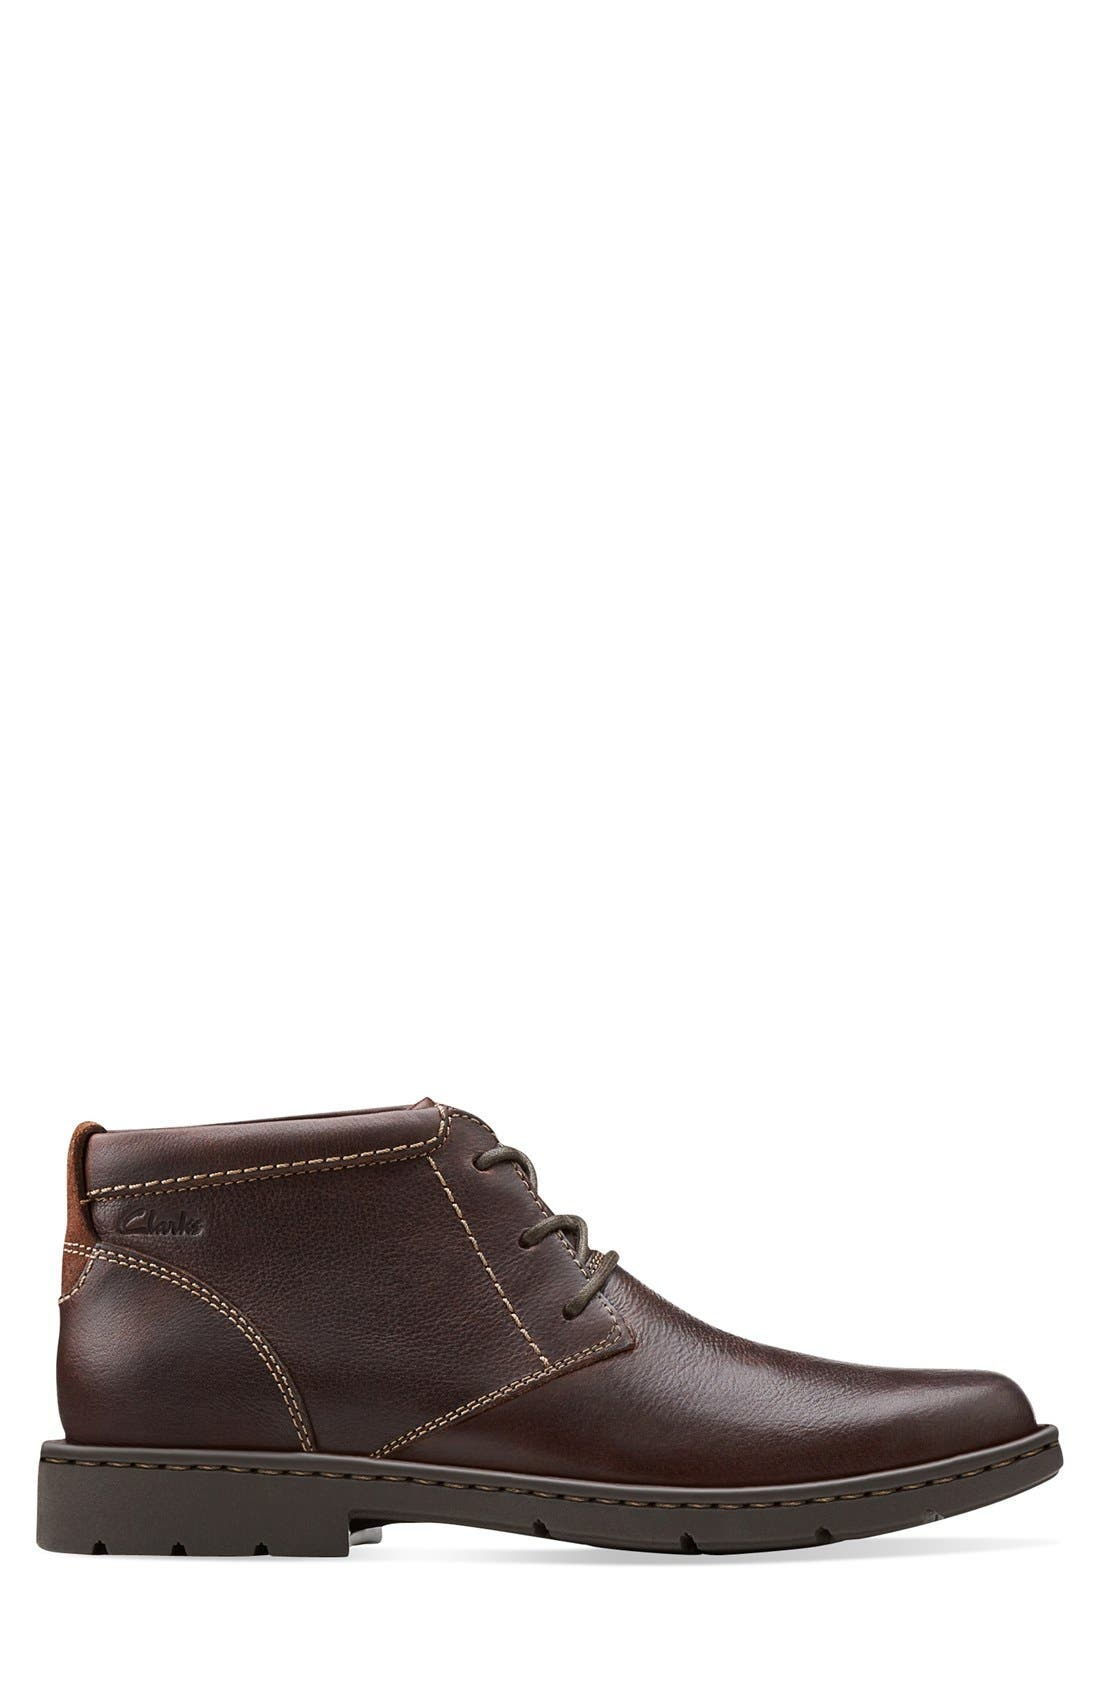 Alternate Image 3  - Clarks® 'Stratton - Limit' Plain Toe Boot (Men)